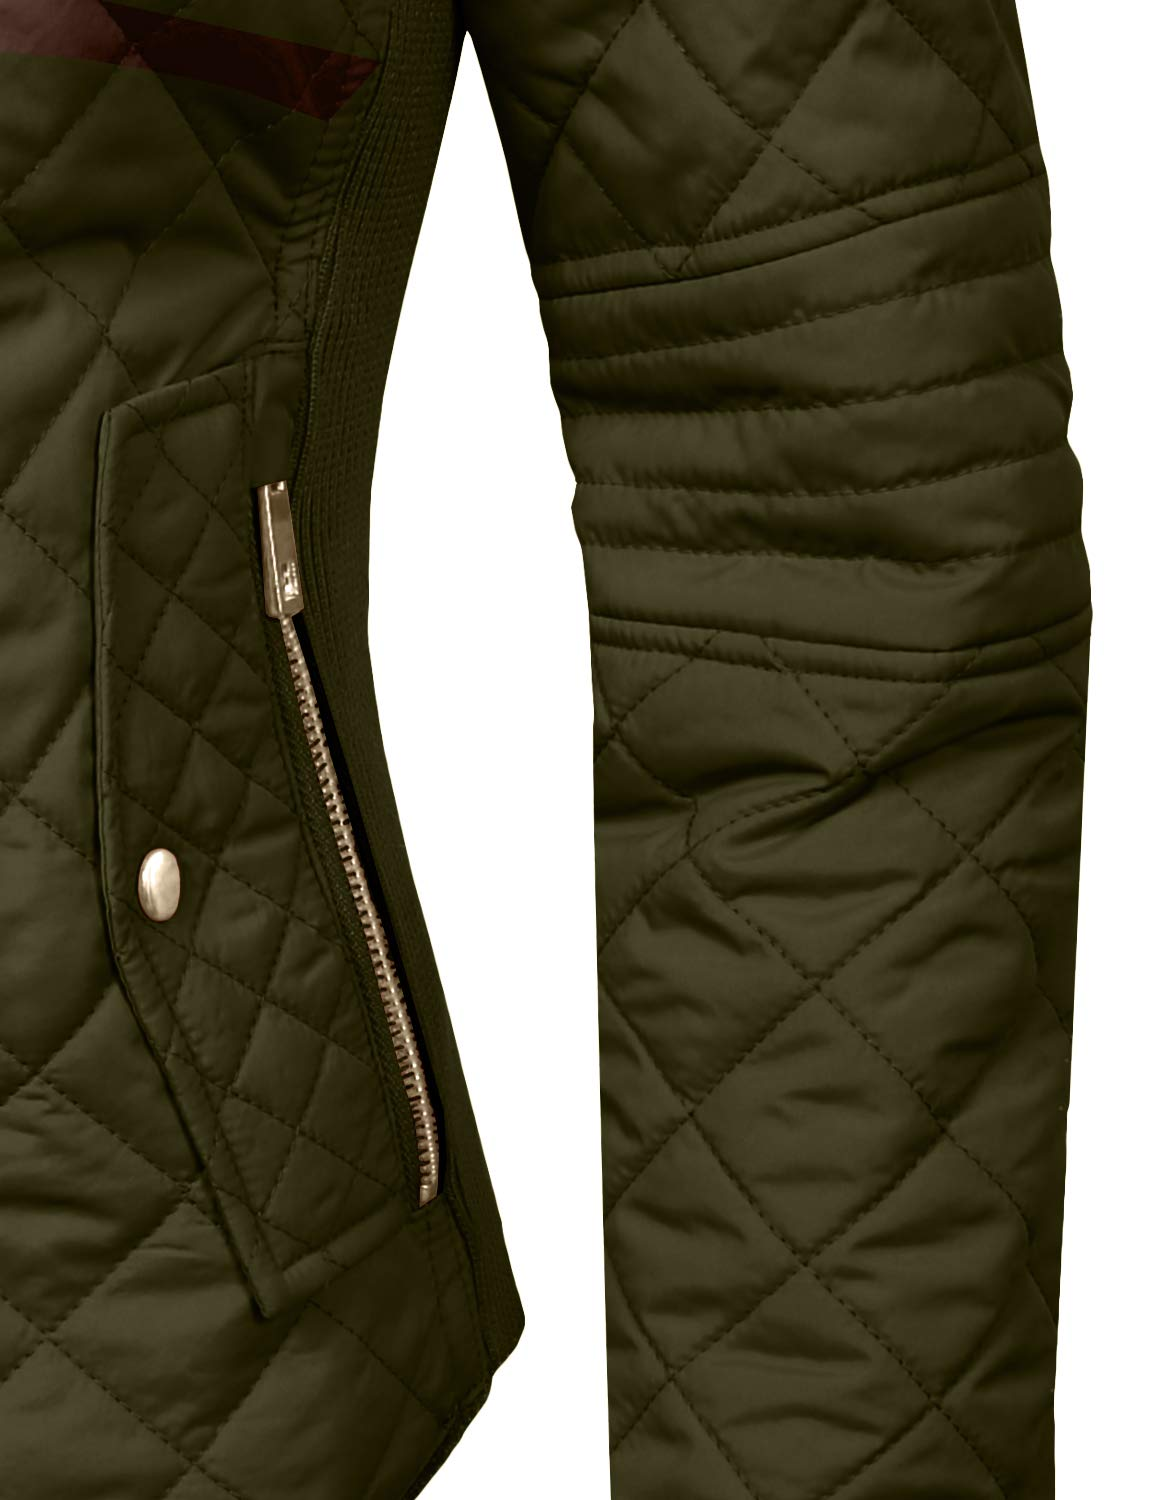 J. LOVNY Womens Lightweight Quilted Warm Zip Jacket/Vest with Pocket Details by J. LOVNY (Image #5)